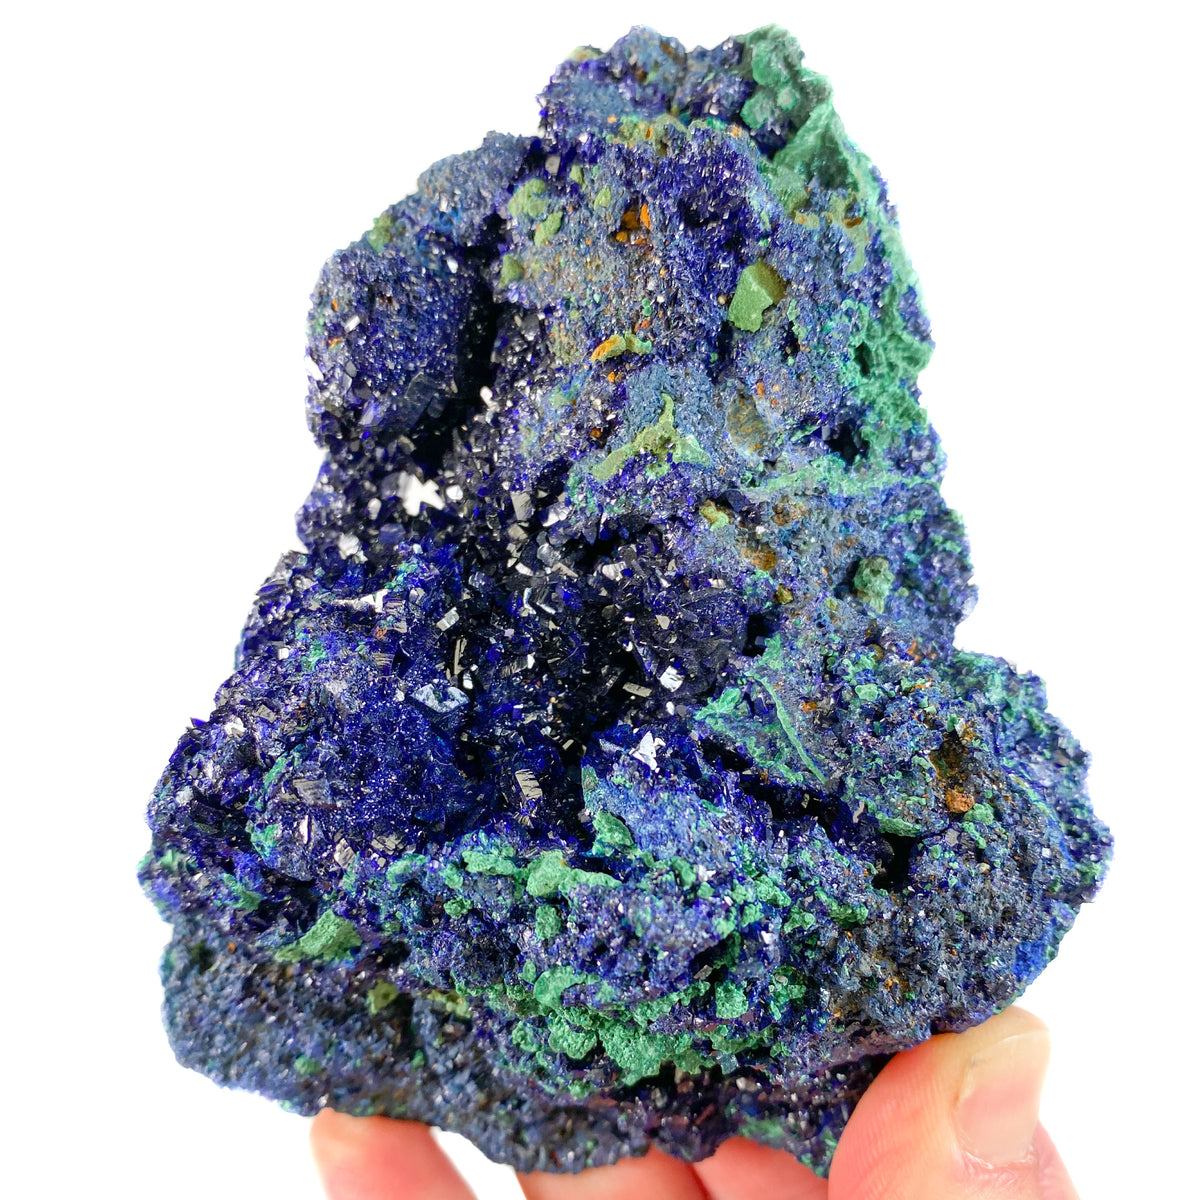 Azurite Crystals with Malachite from China